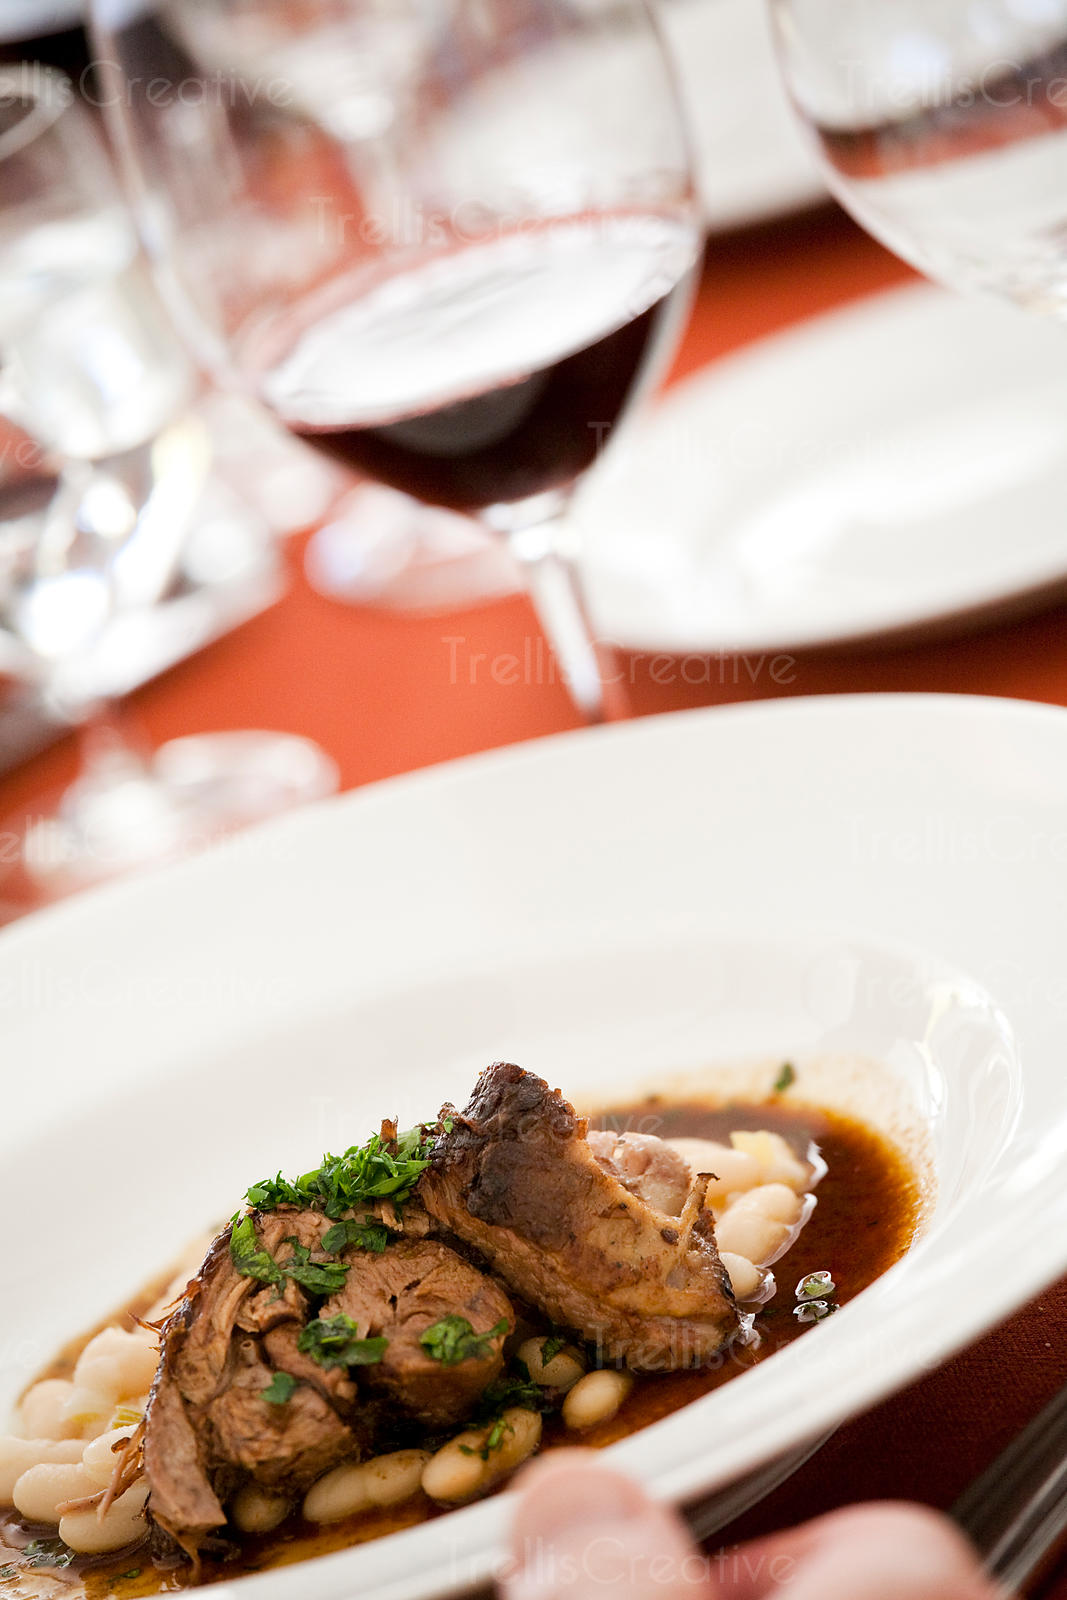 Braised beef short ribs over fresh navy beans in a red wine reduction sauce paired with a glass of cabernet sauvignon